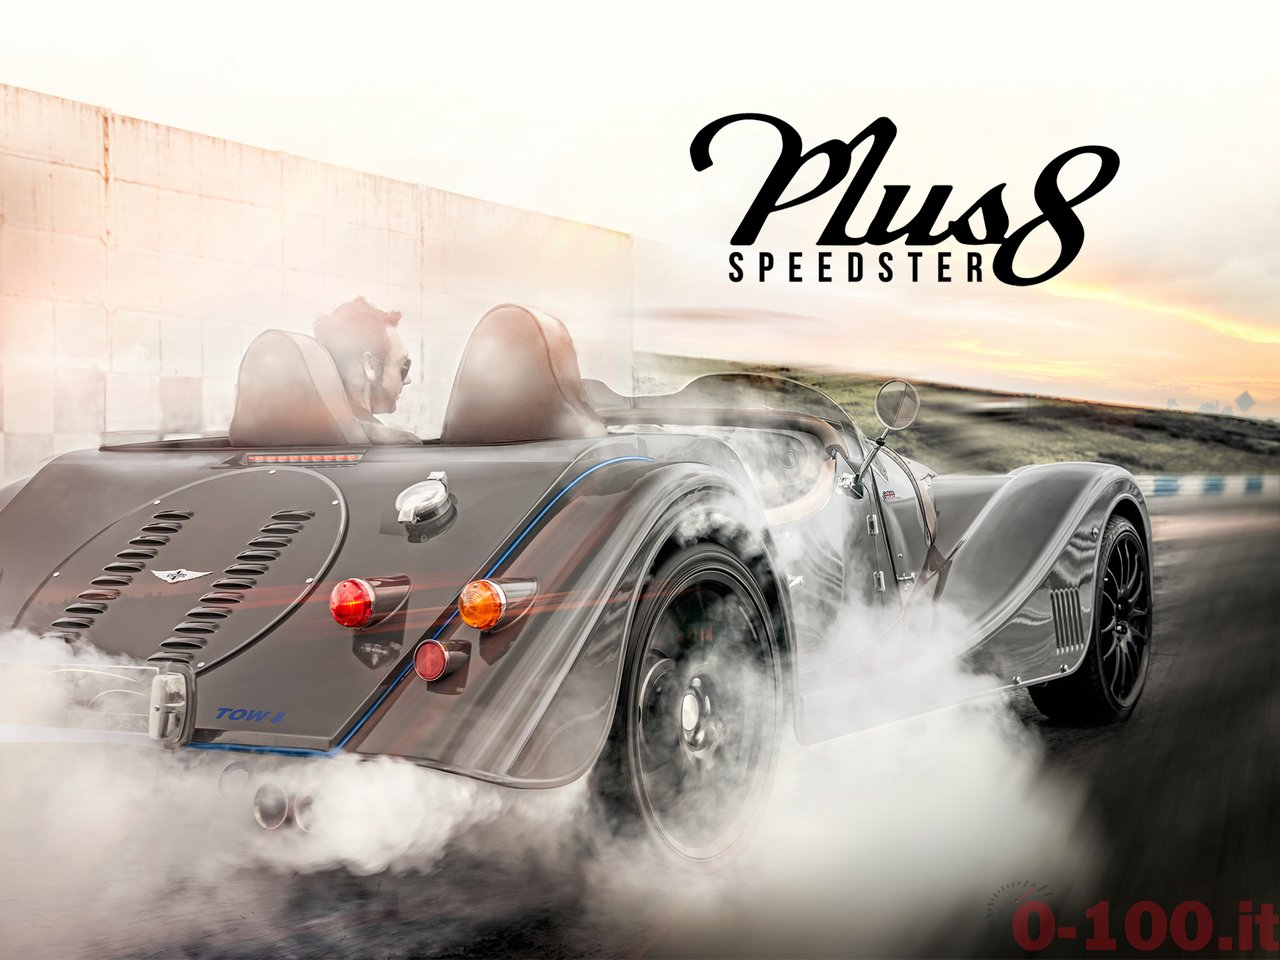 morgan-plus8-speedster_0-100_1